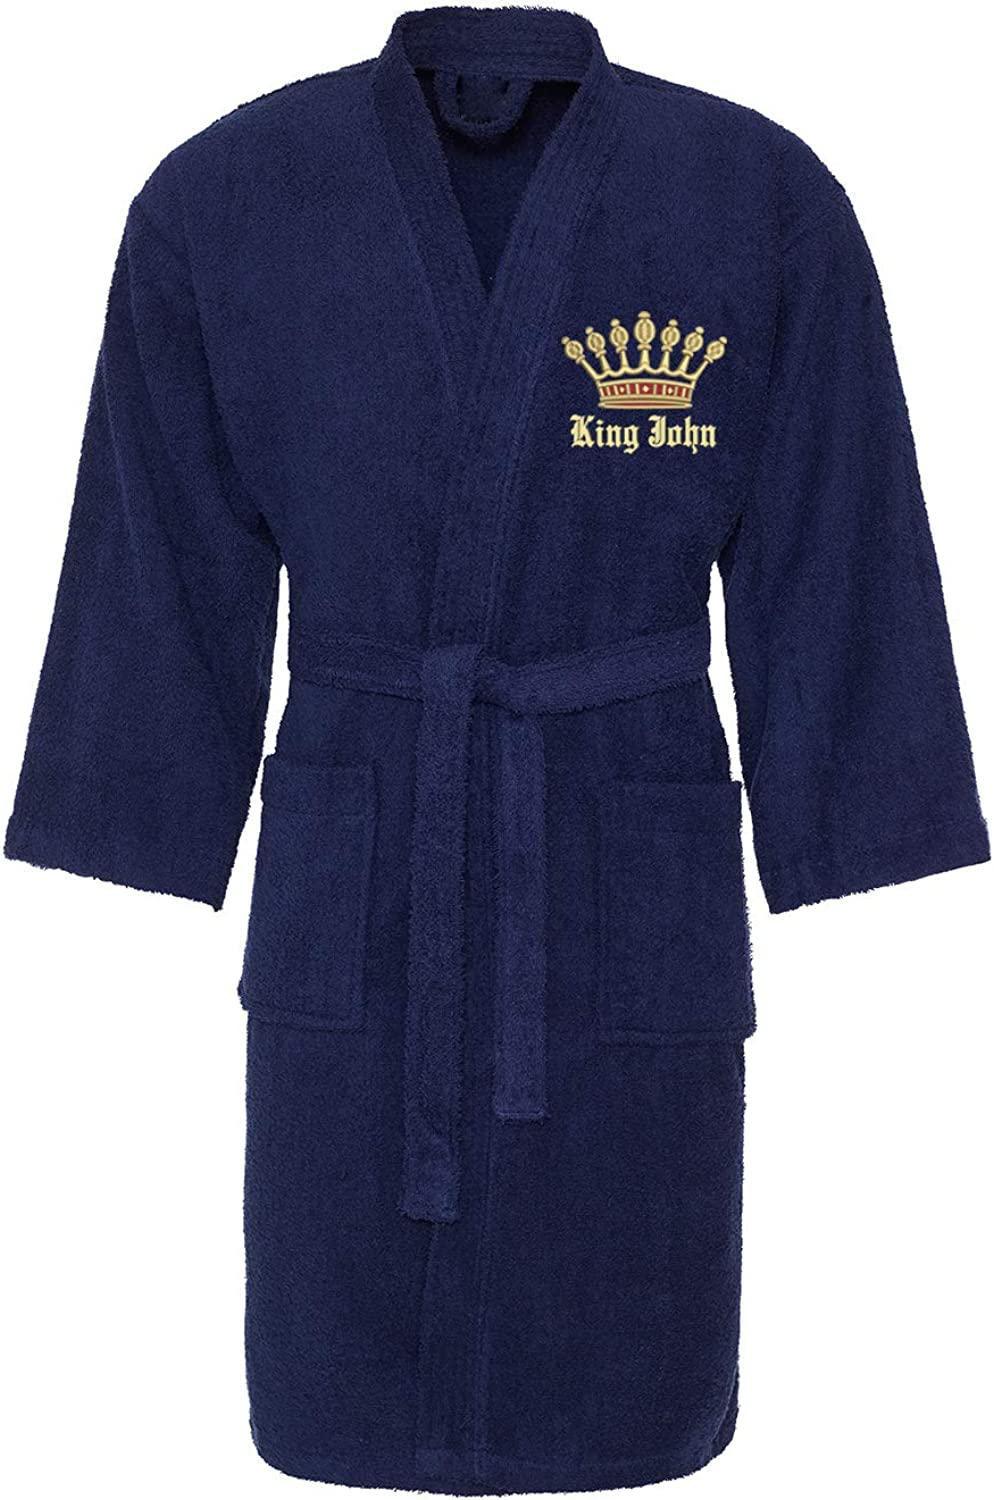 Graphic Impact Gold King Crown Design with Name Text Embroidery On Mens Bathrobe Gift Box